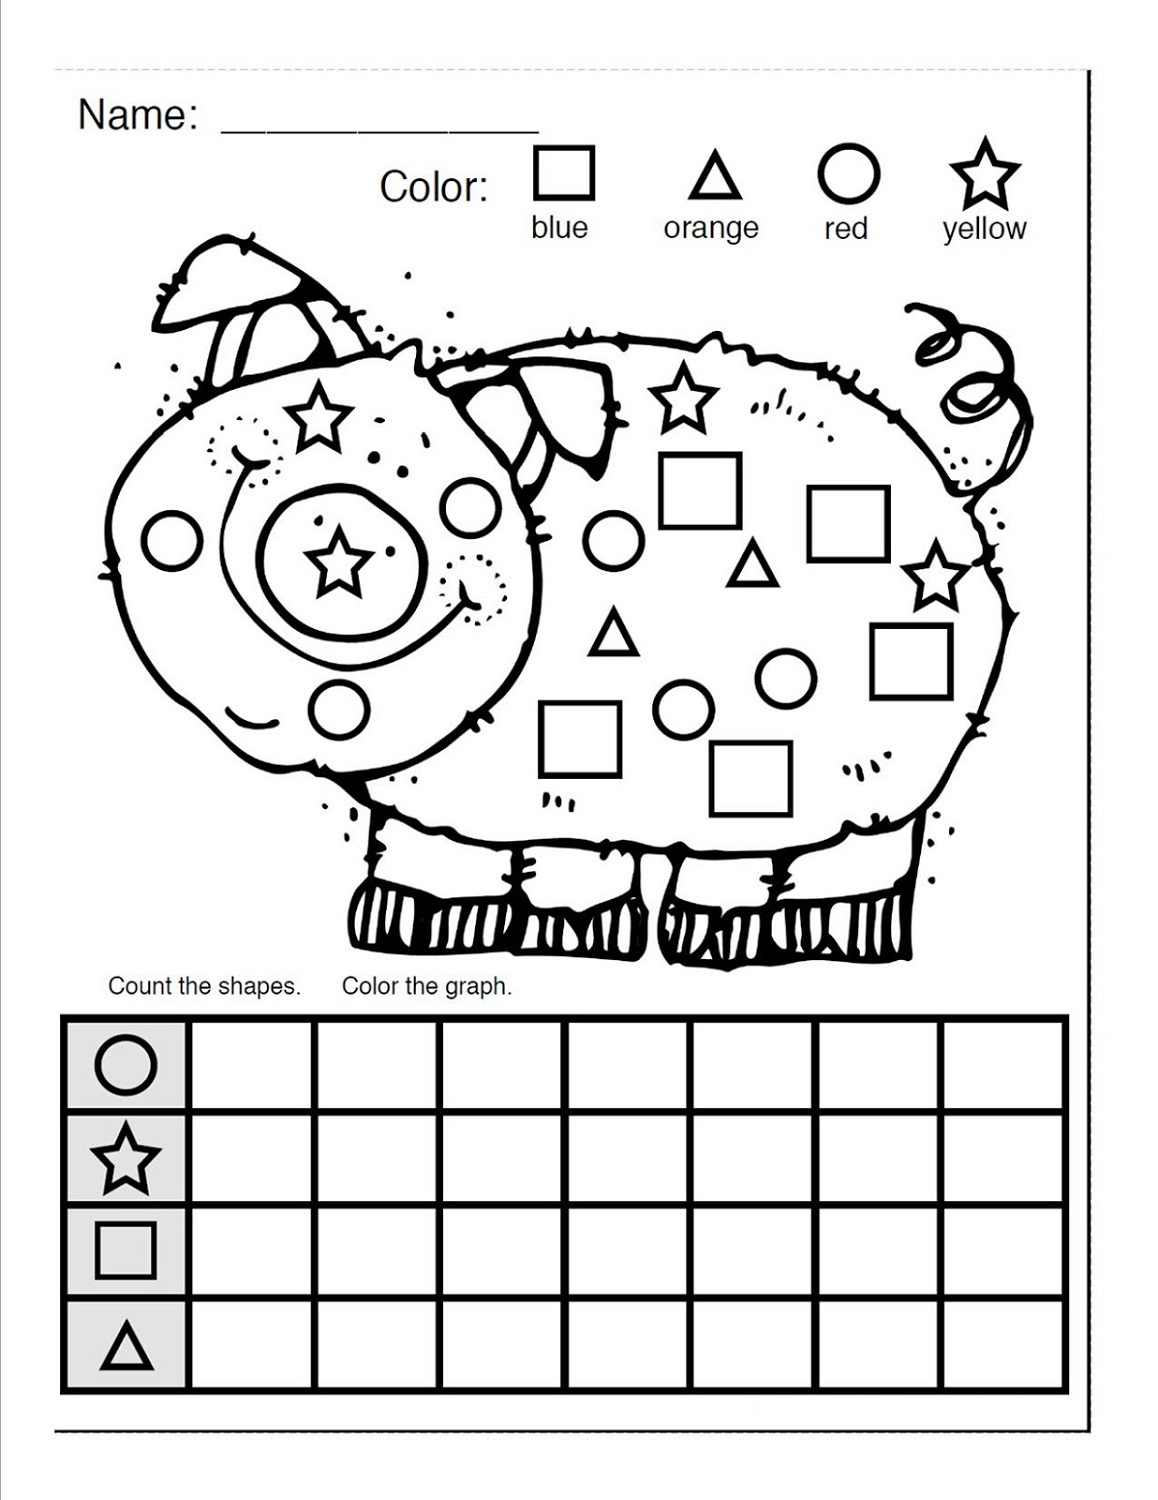 Tracing Shapes Worksheet Cones